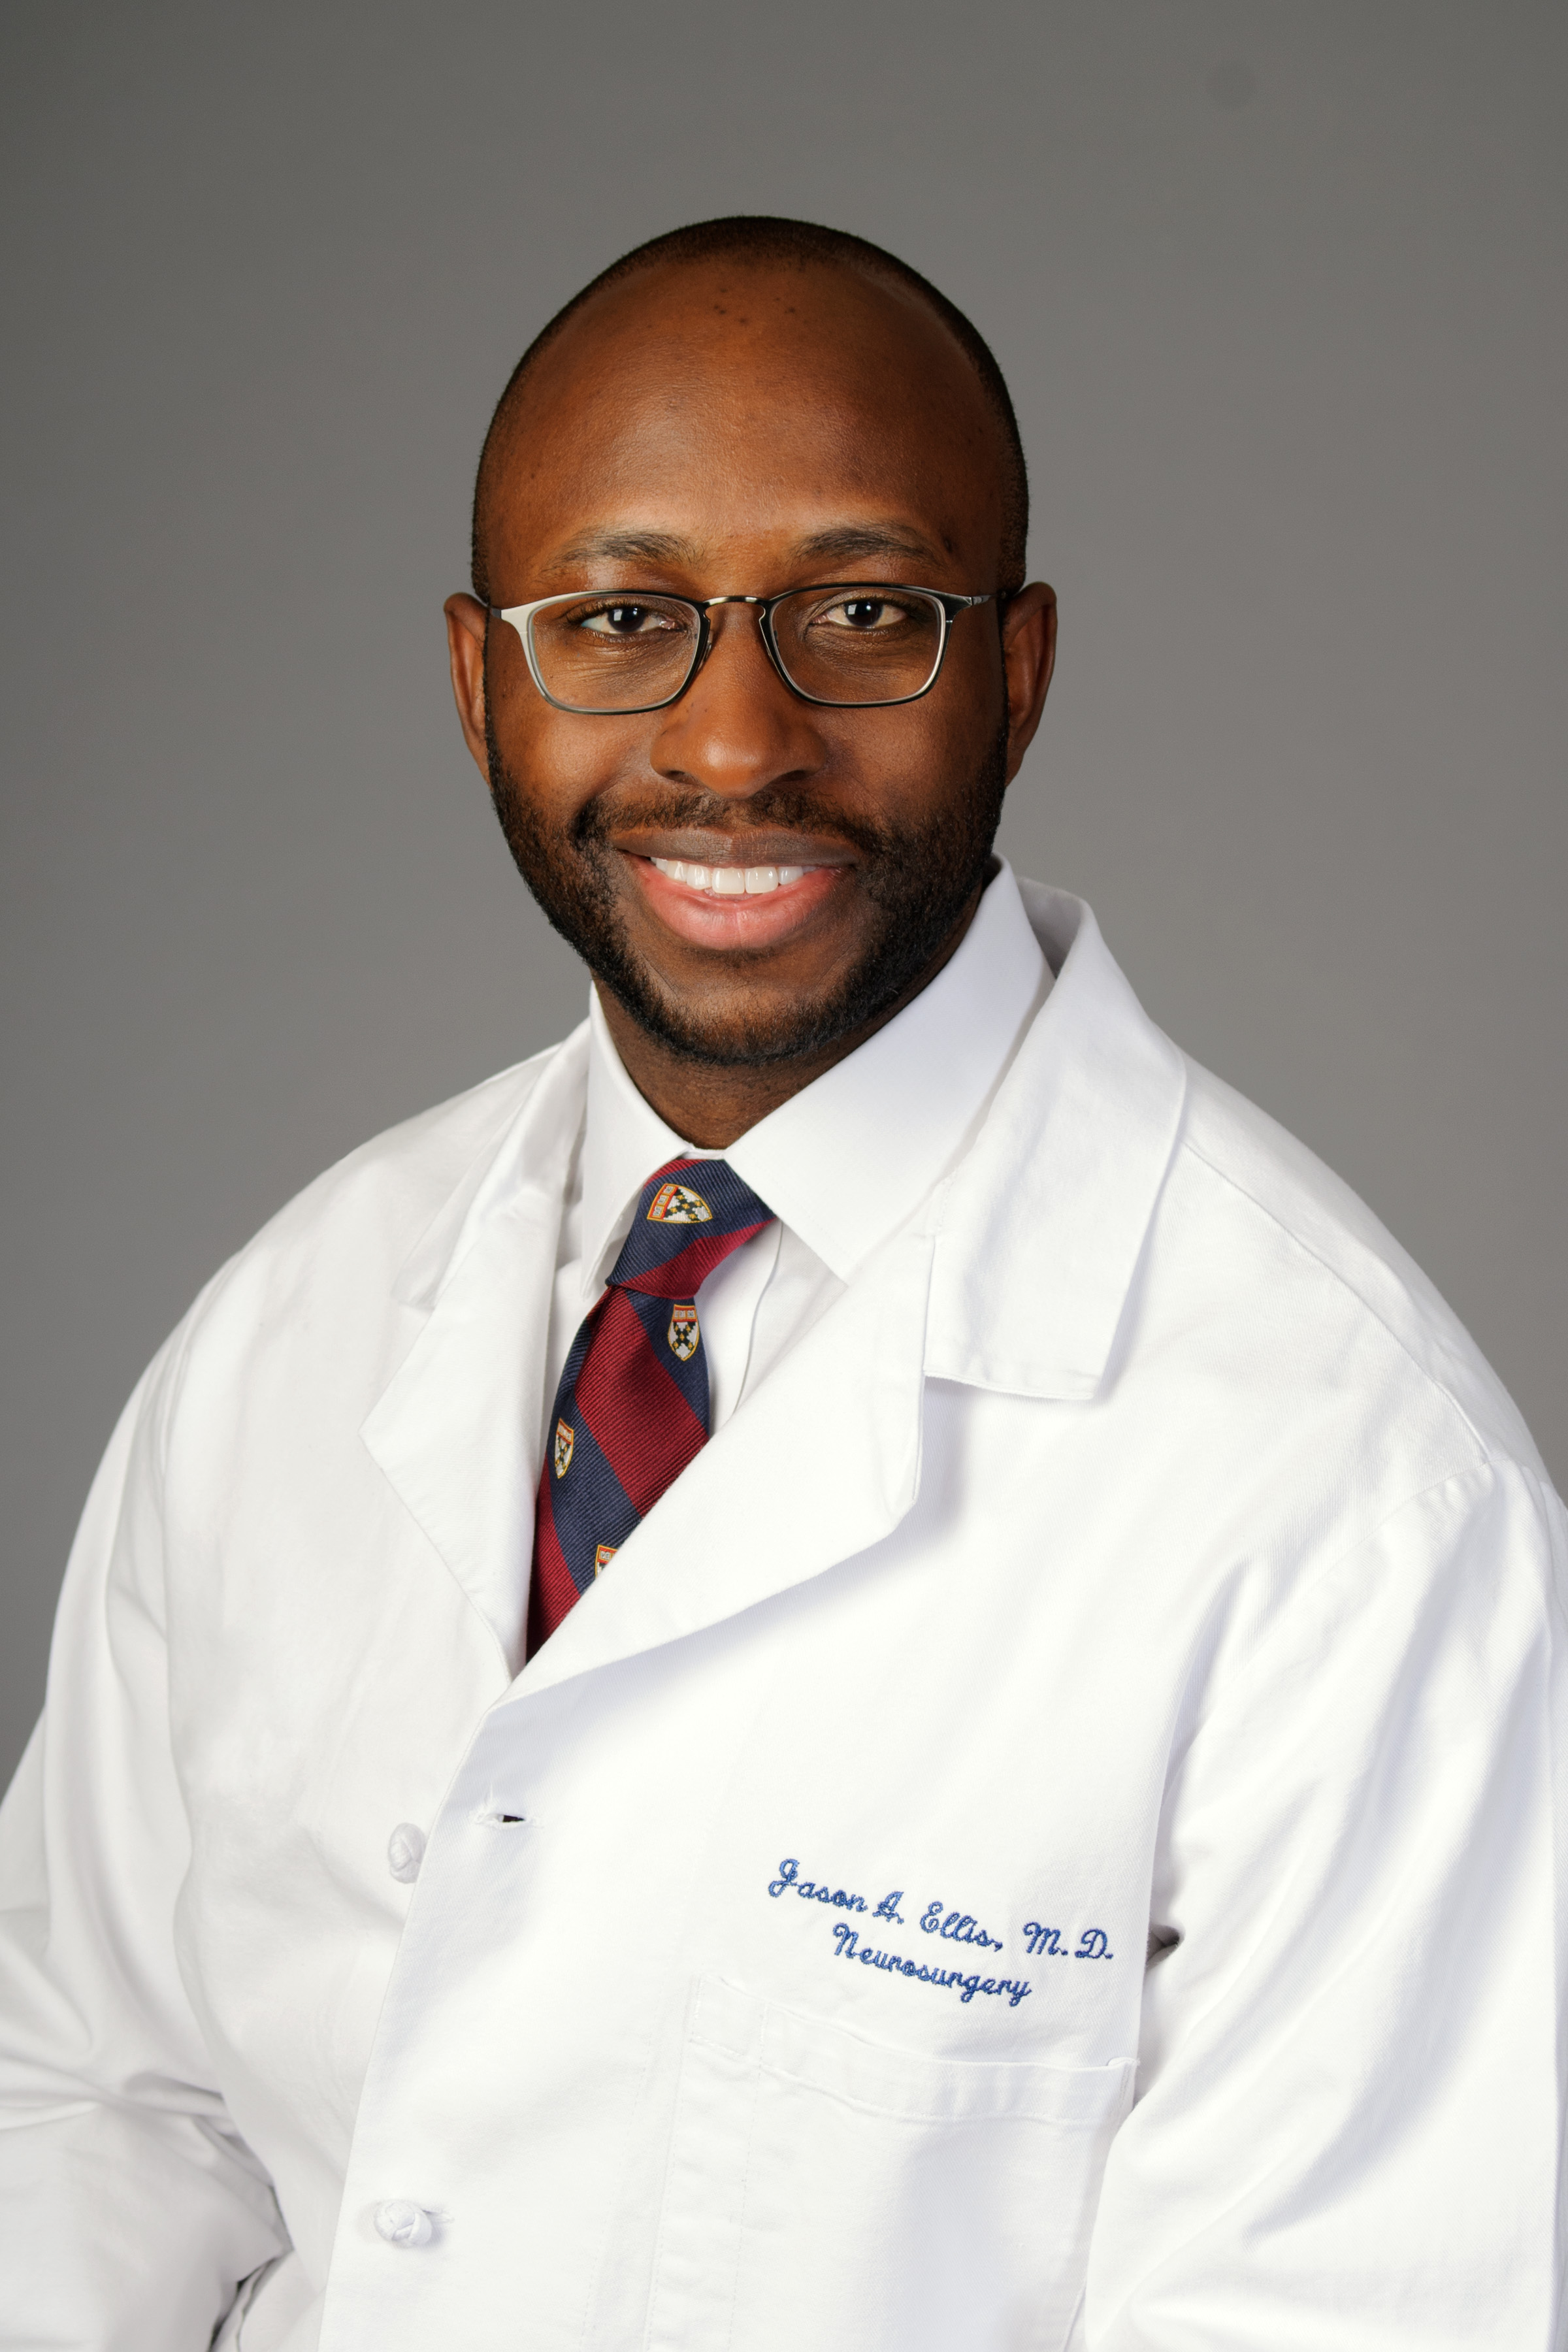 Dr. Jason A. Ellis